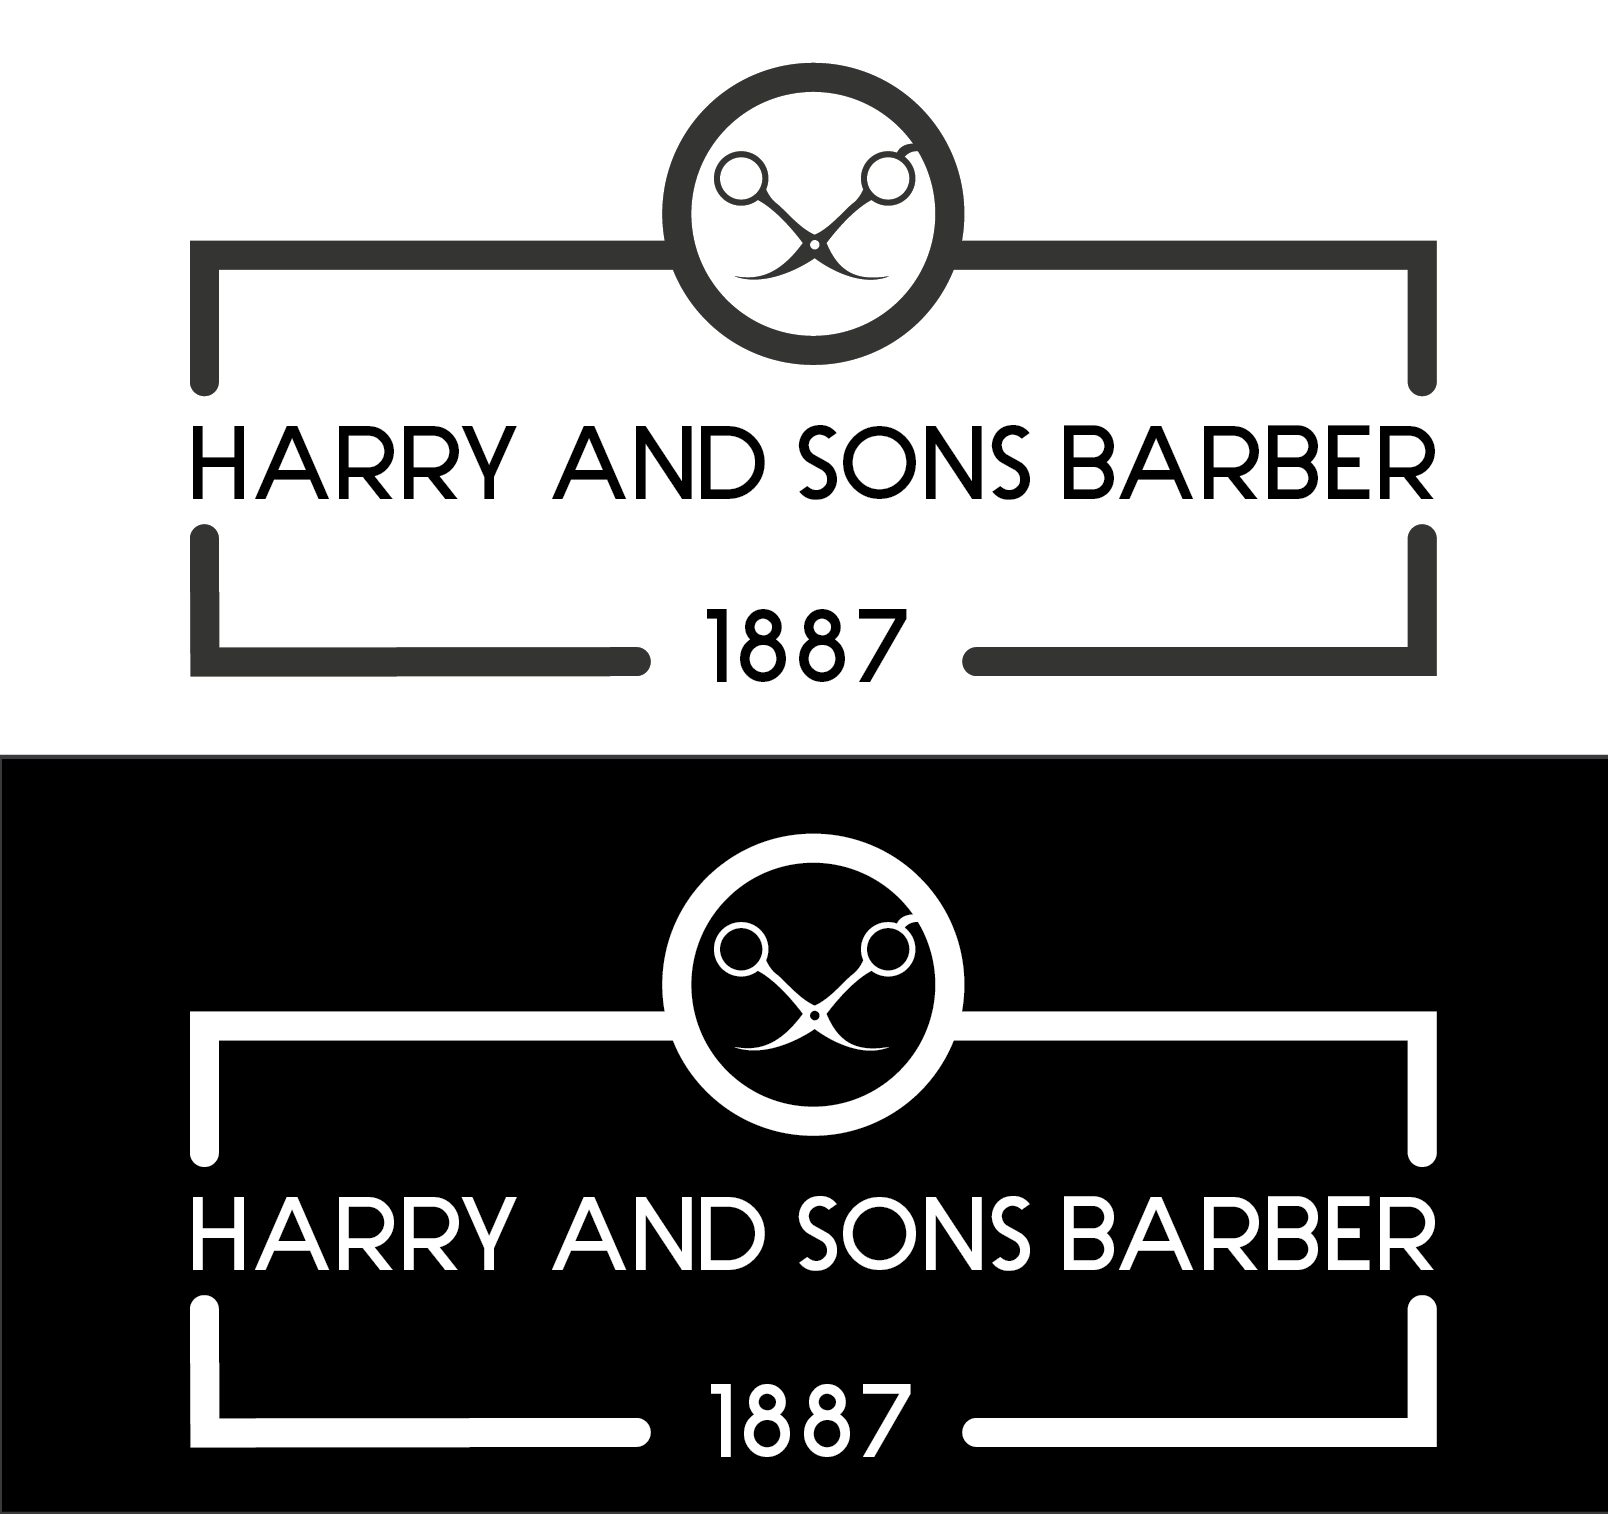 Logo Design by Ahtasham Ahmed - Entry No. 173 in the Logo Design Contest Captivating Logo Design for Harry and Sons Barber.